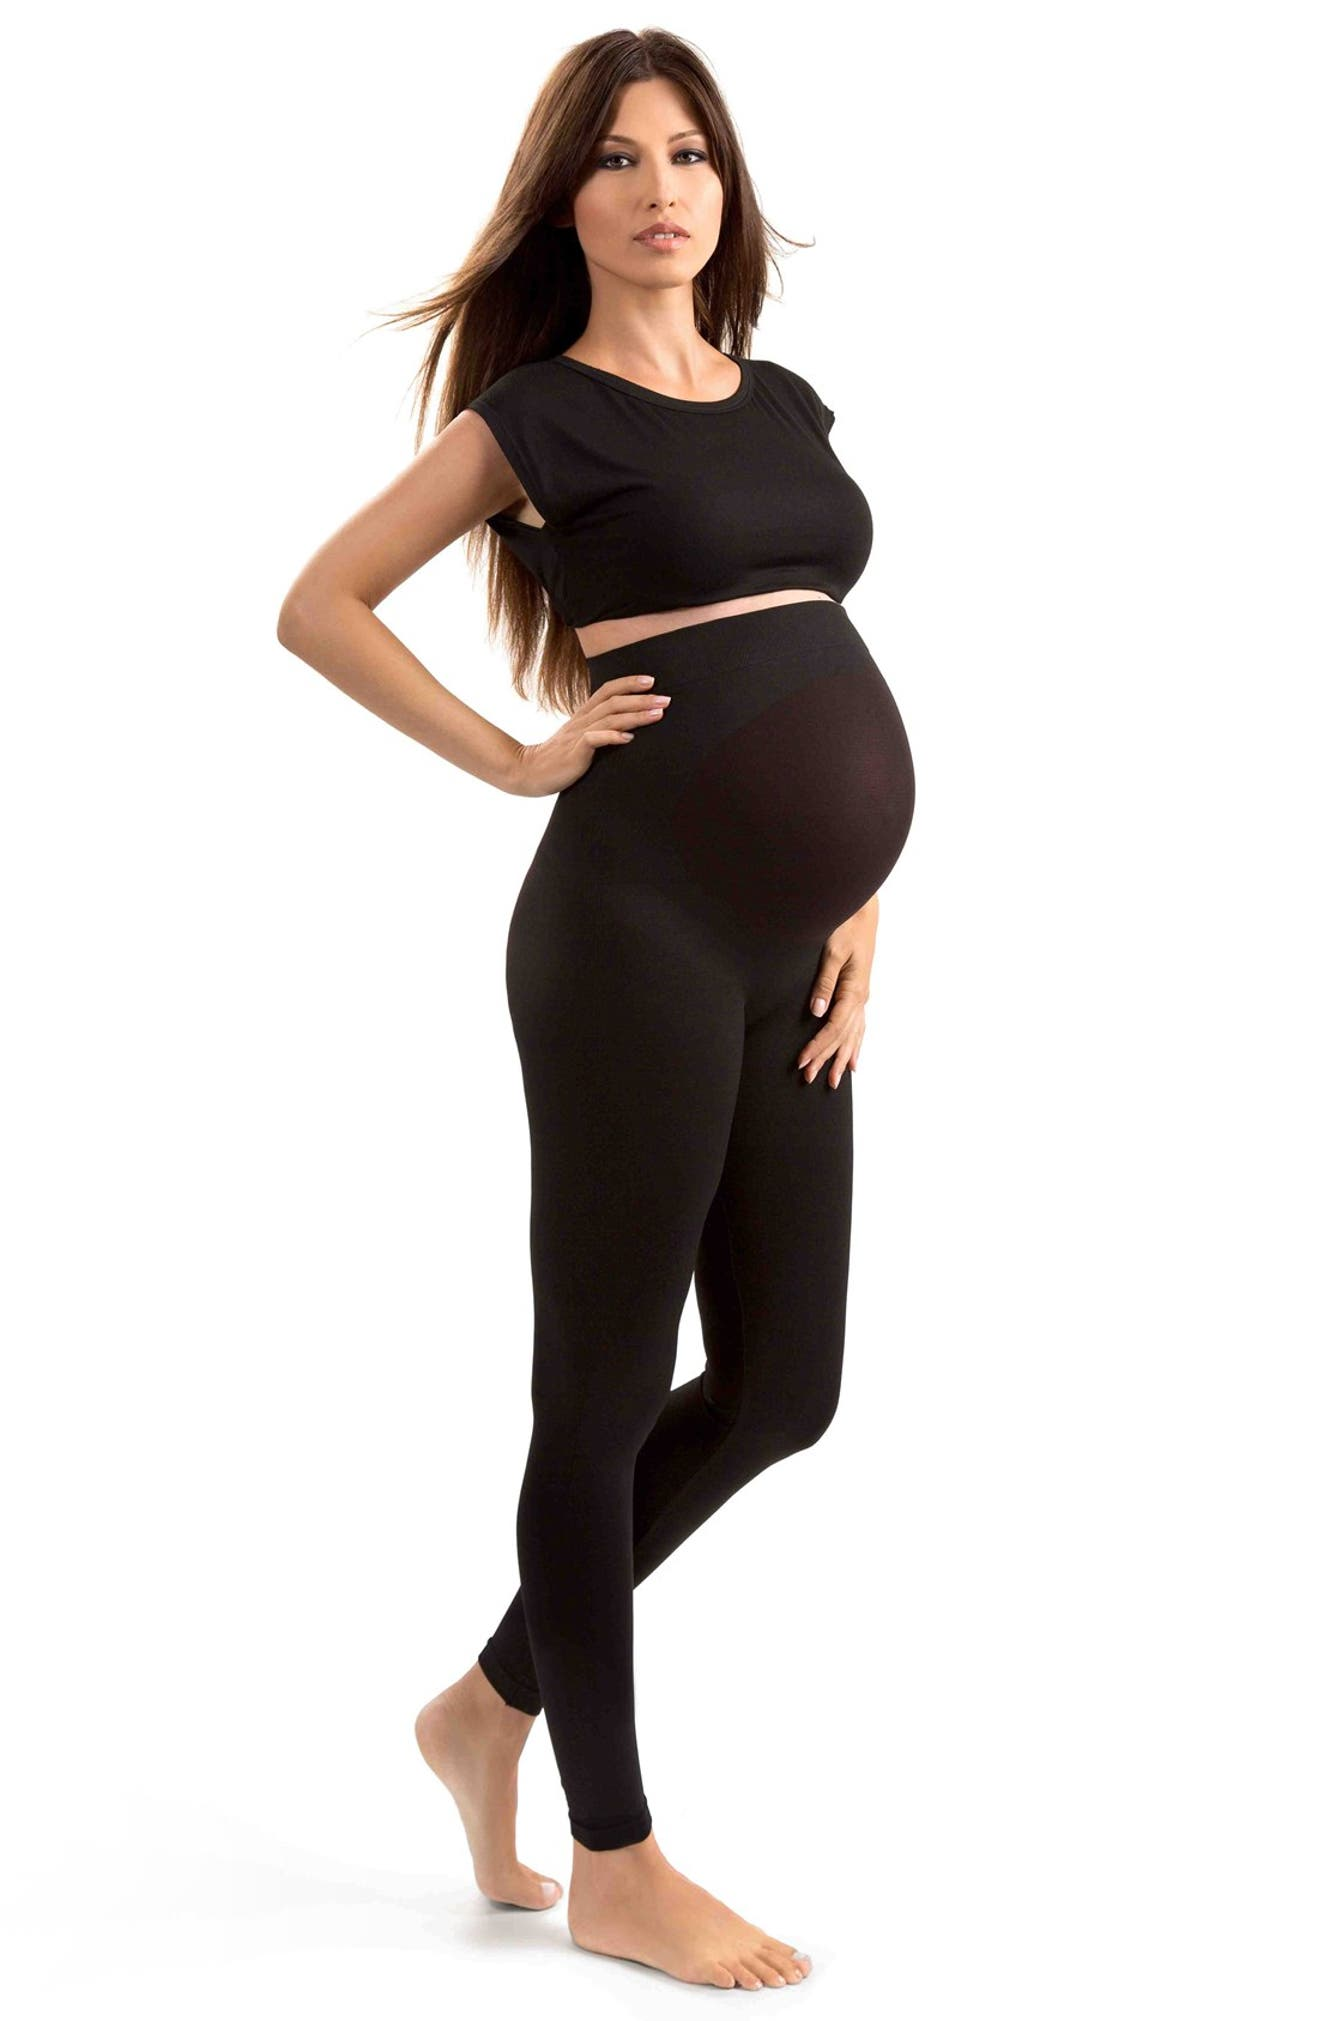 42aaba75d8a56 BLANQI Belly Support Bellyband, Tank Top & Leggings Maternity/Postpartum  Set | Nordstrom. Blanqi Everyday ...